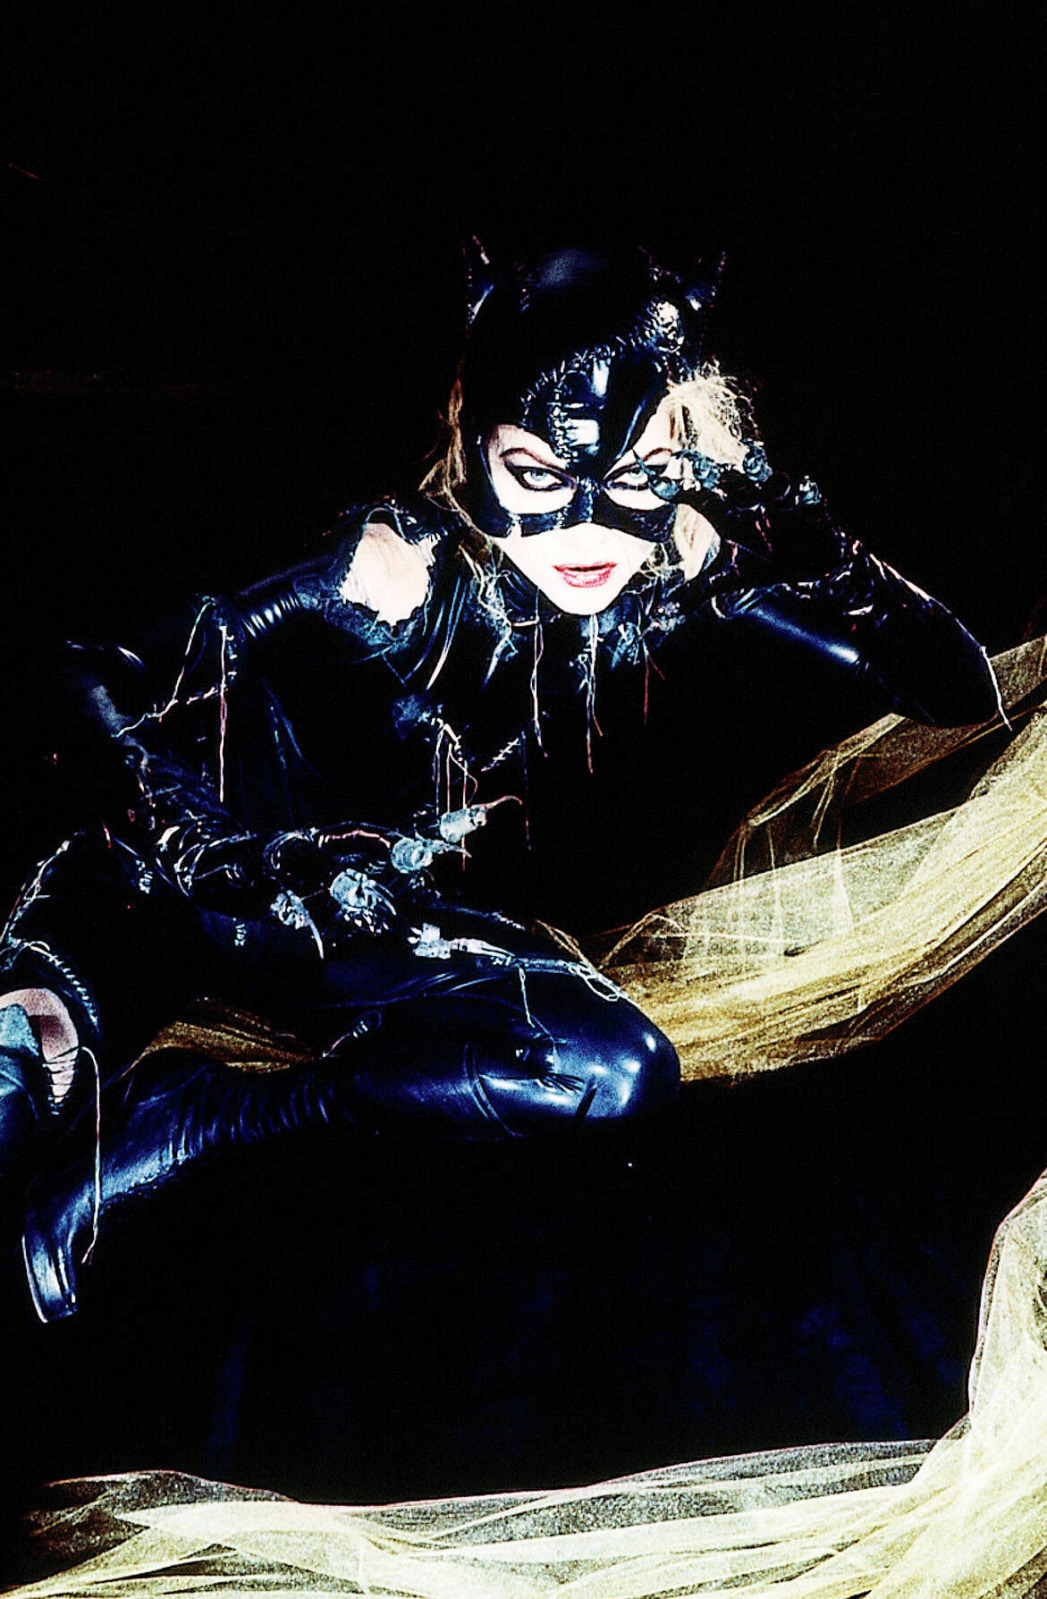 Catwoman catwoman selina kyle photo 18927961 fanpop